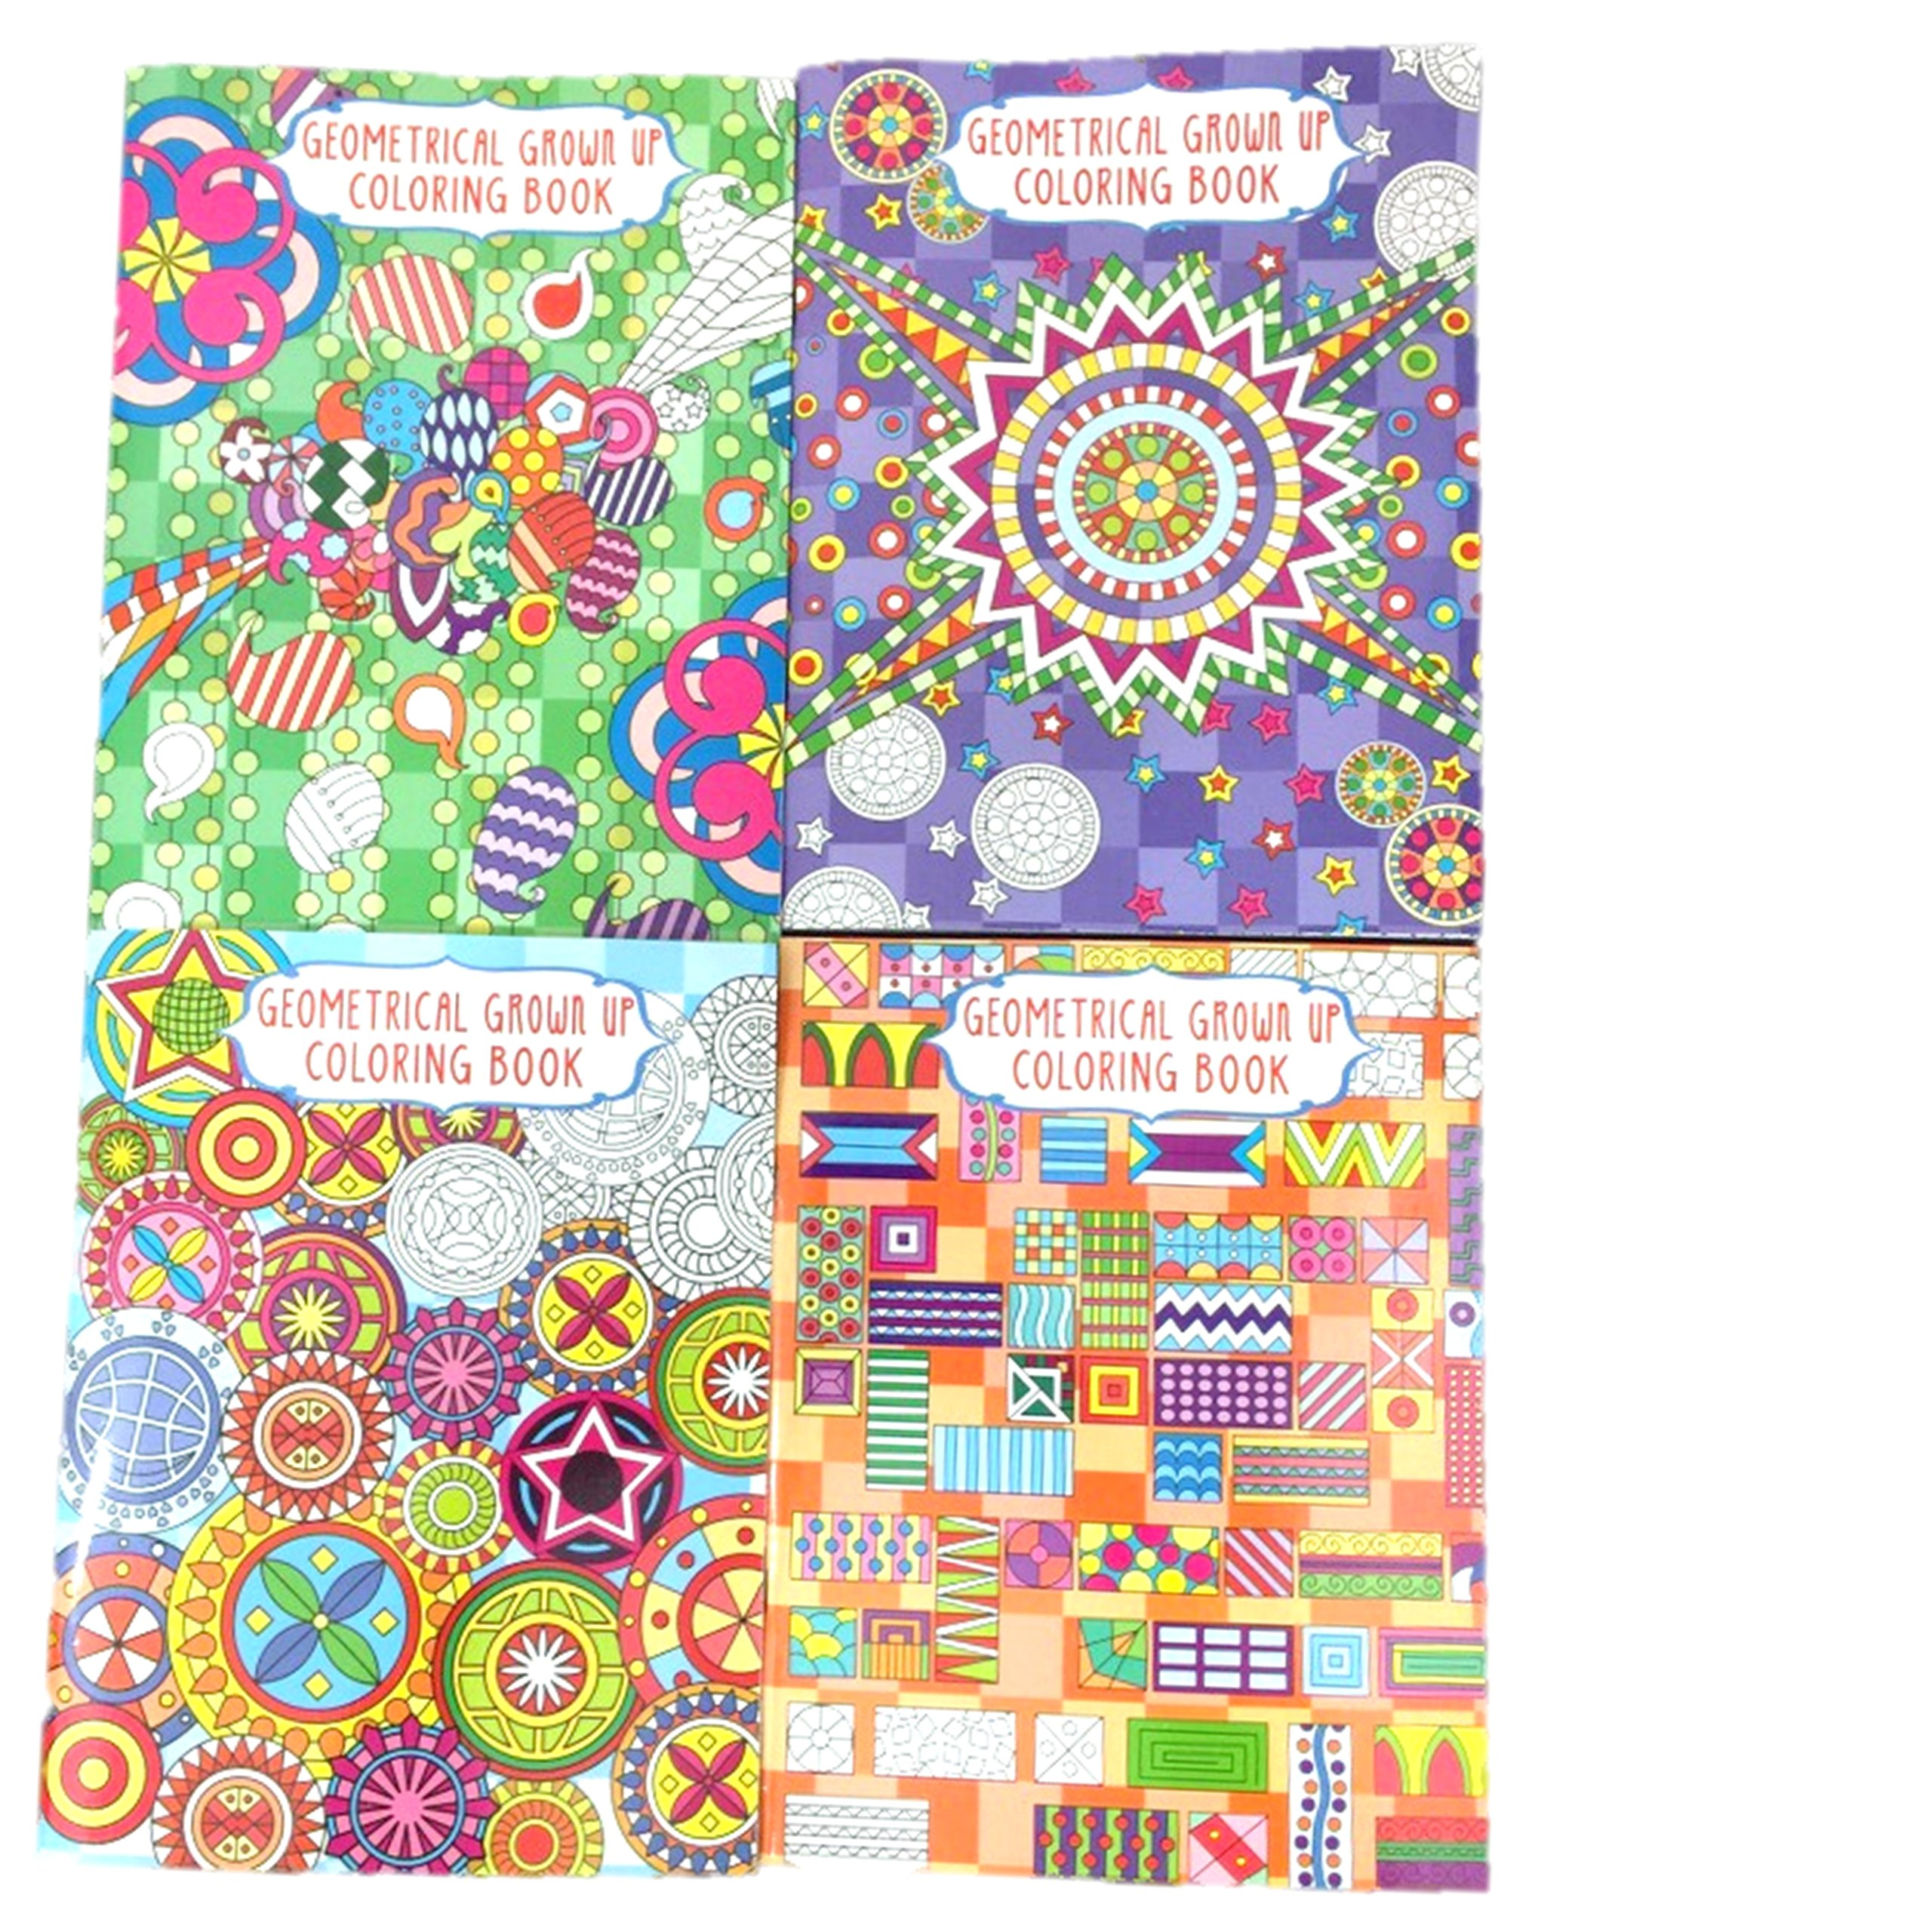 Geometrical Grown Up Coloring Book